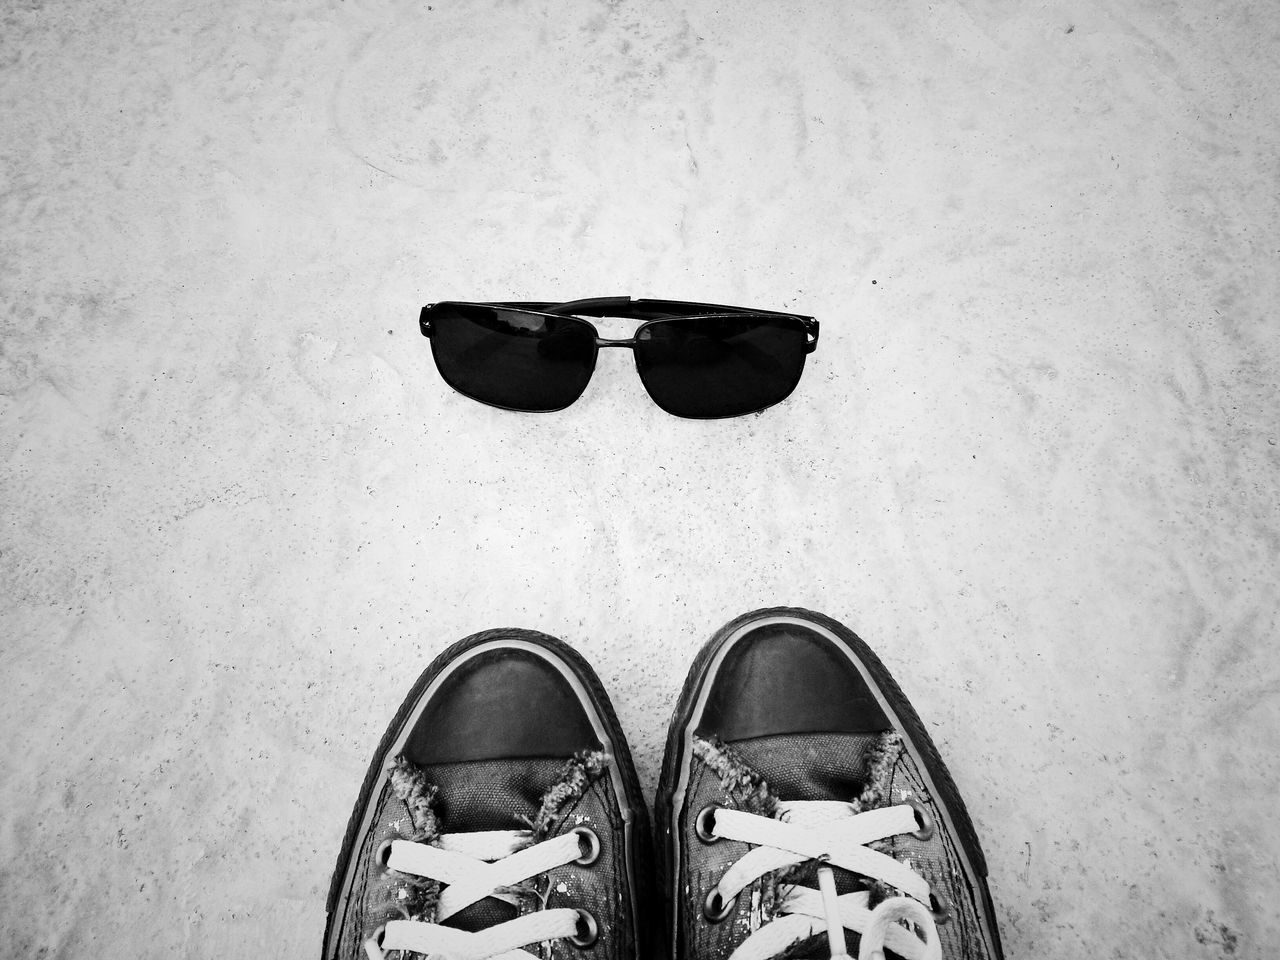 shoe, personal perspective, human leg, pair, one person, low section, standing, directly above, human body part, high angle view, canvas shoe, real people, sunglasses, fashion, lifestyles, day, indoors, men, close-up, adult, people